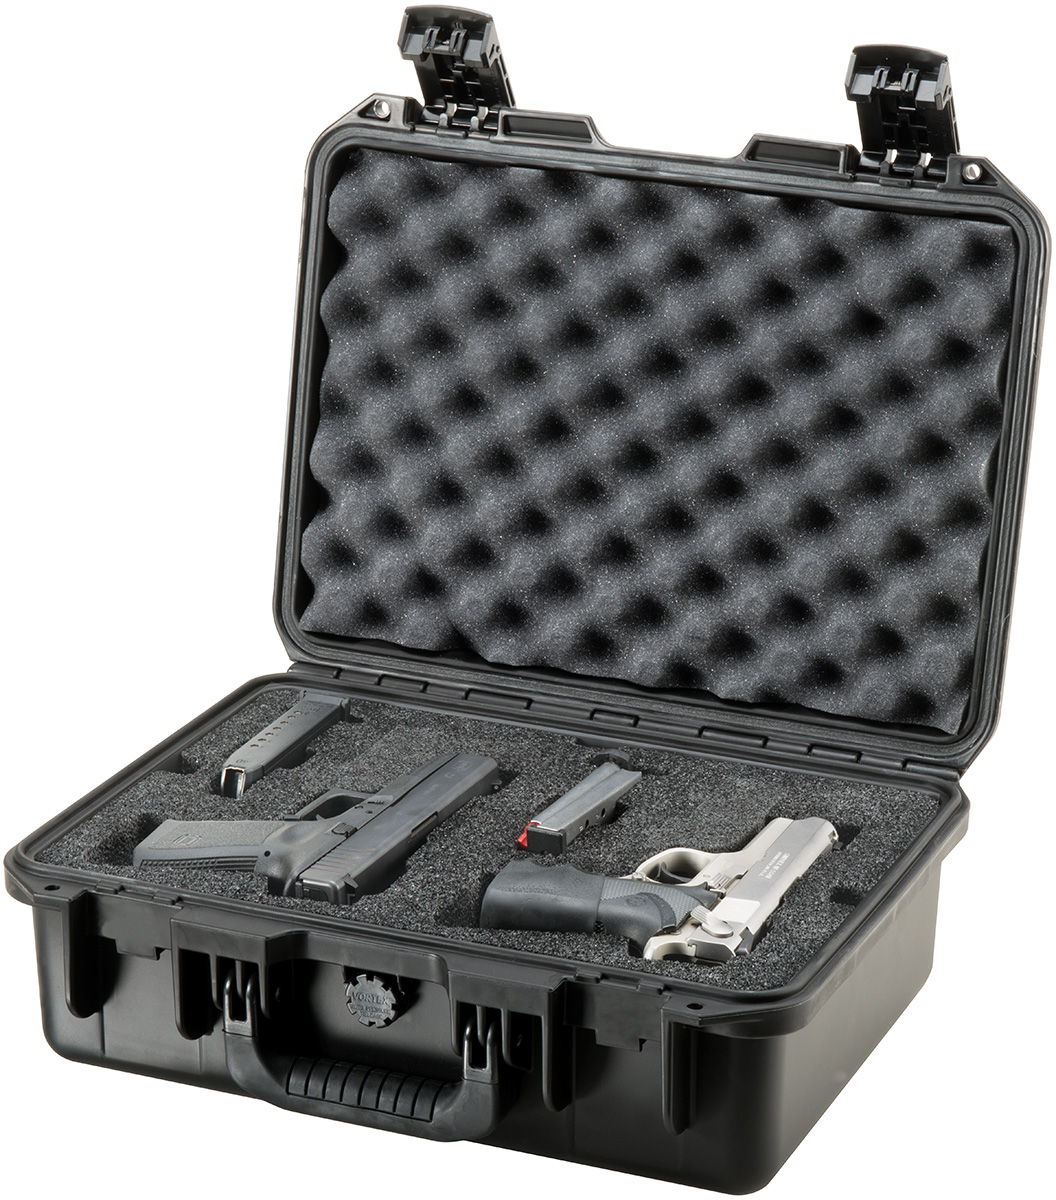 pelican peli products iM2200 glock pistol gun waterproof case